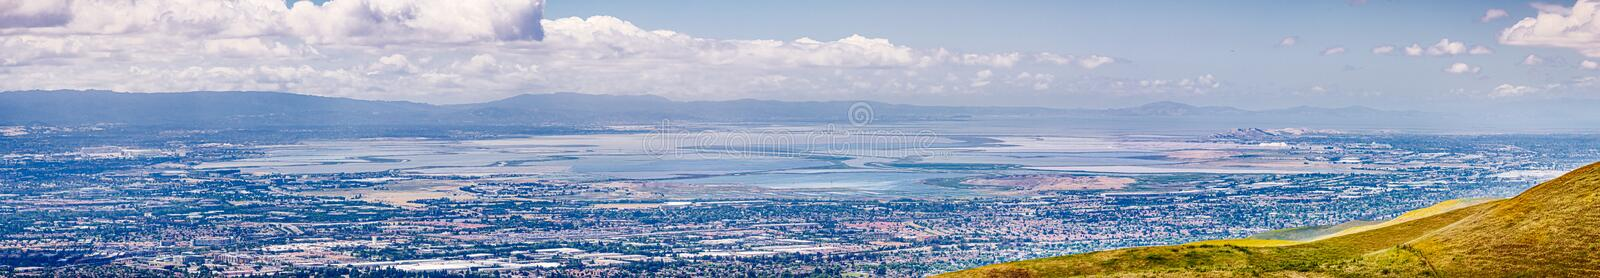 Panoramic view of the cities on the shoreline of south San Francisco bay area; colorful salt ponds in the background; Silicon. Valley, California stock photos